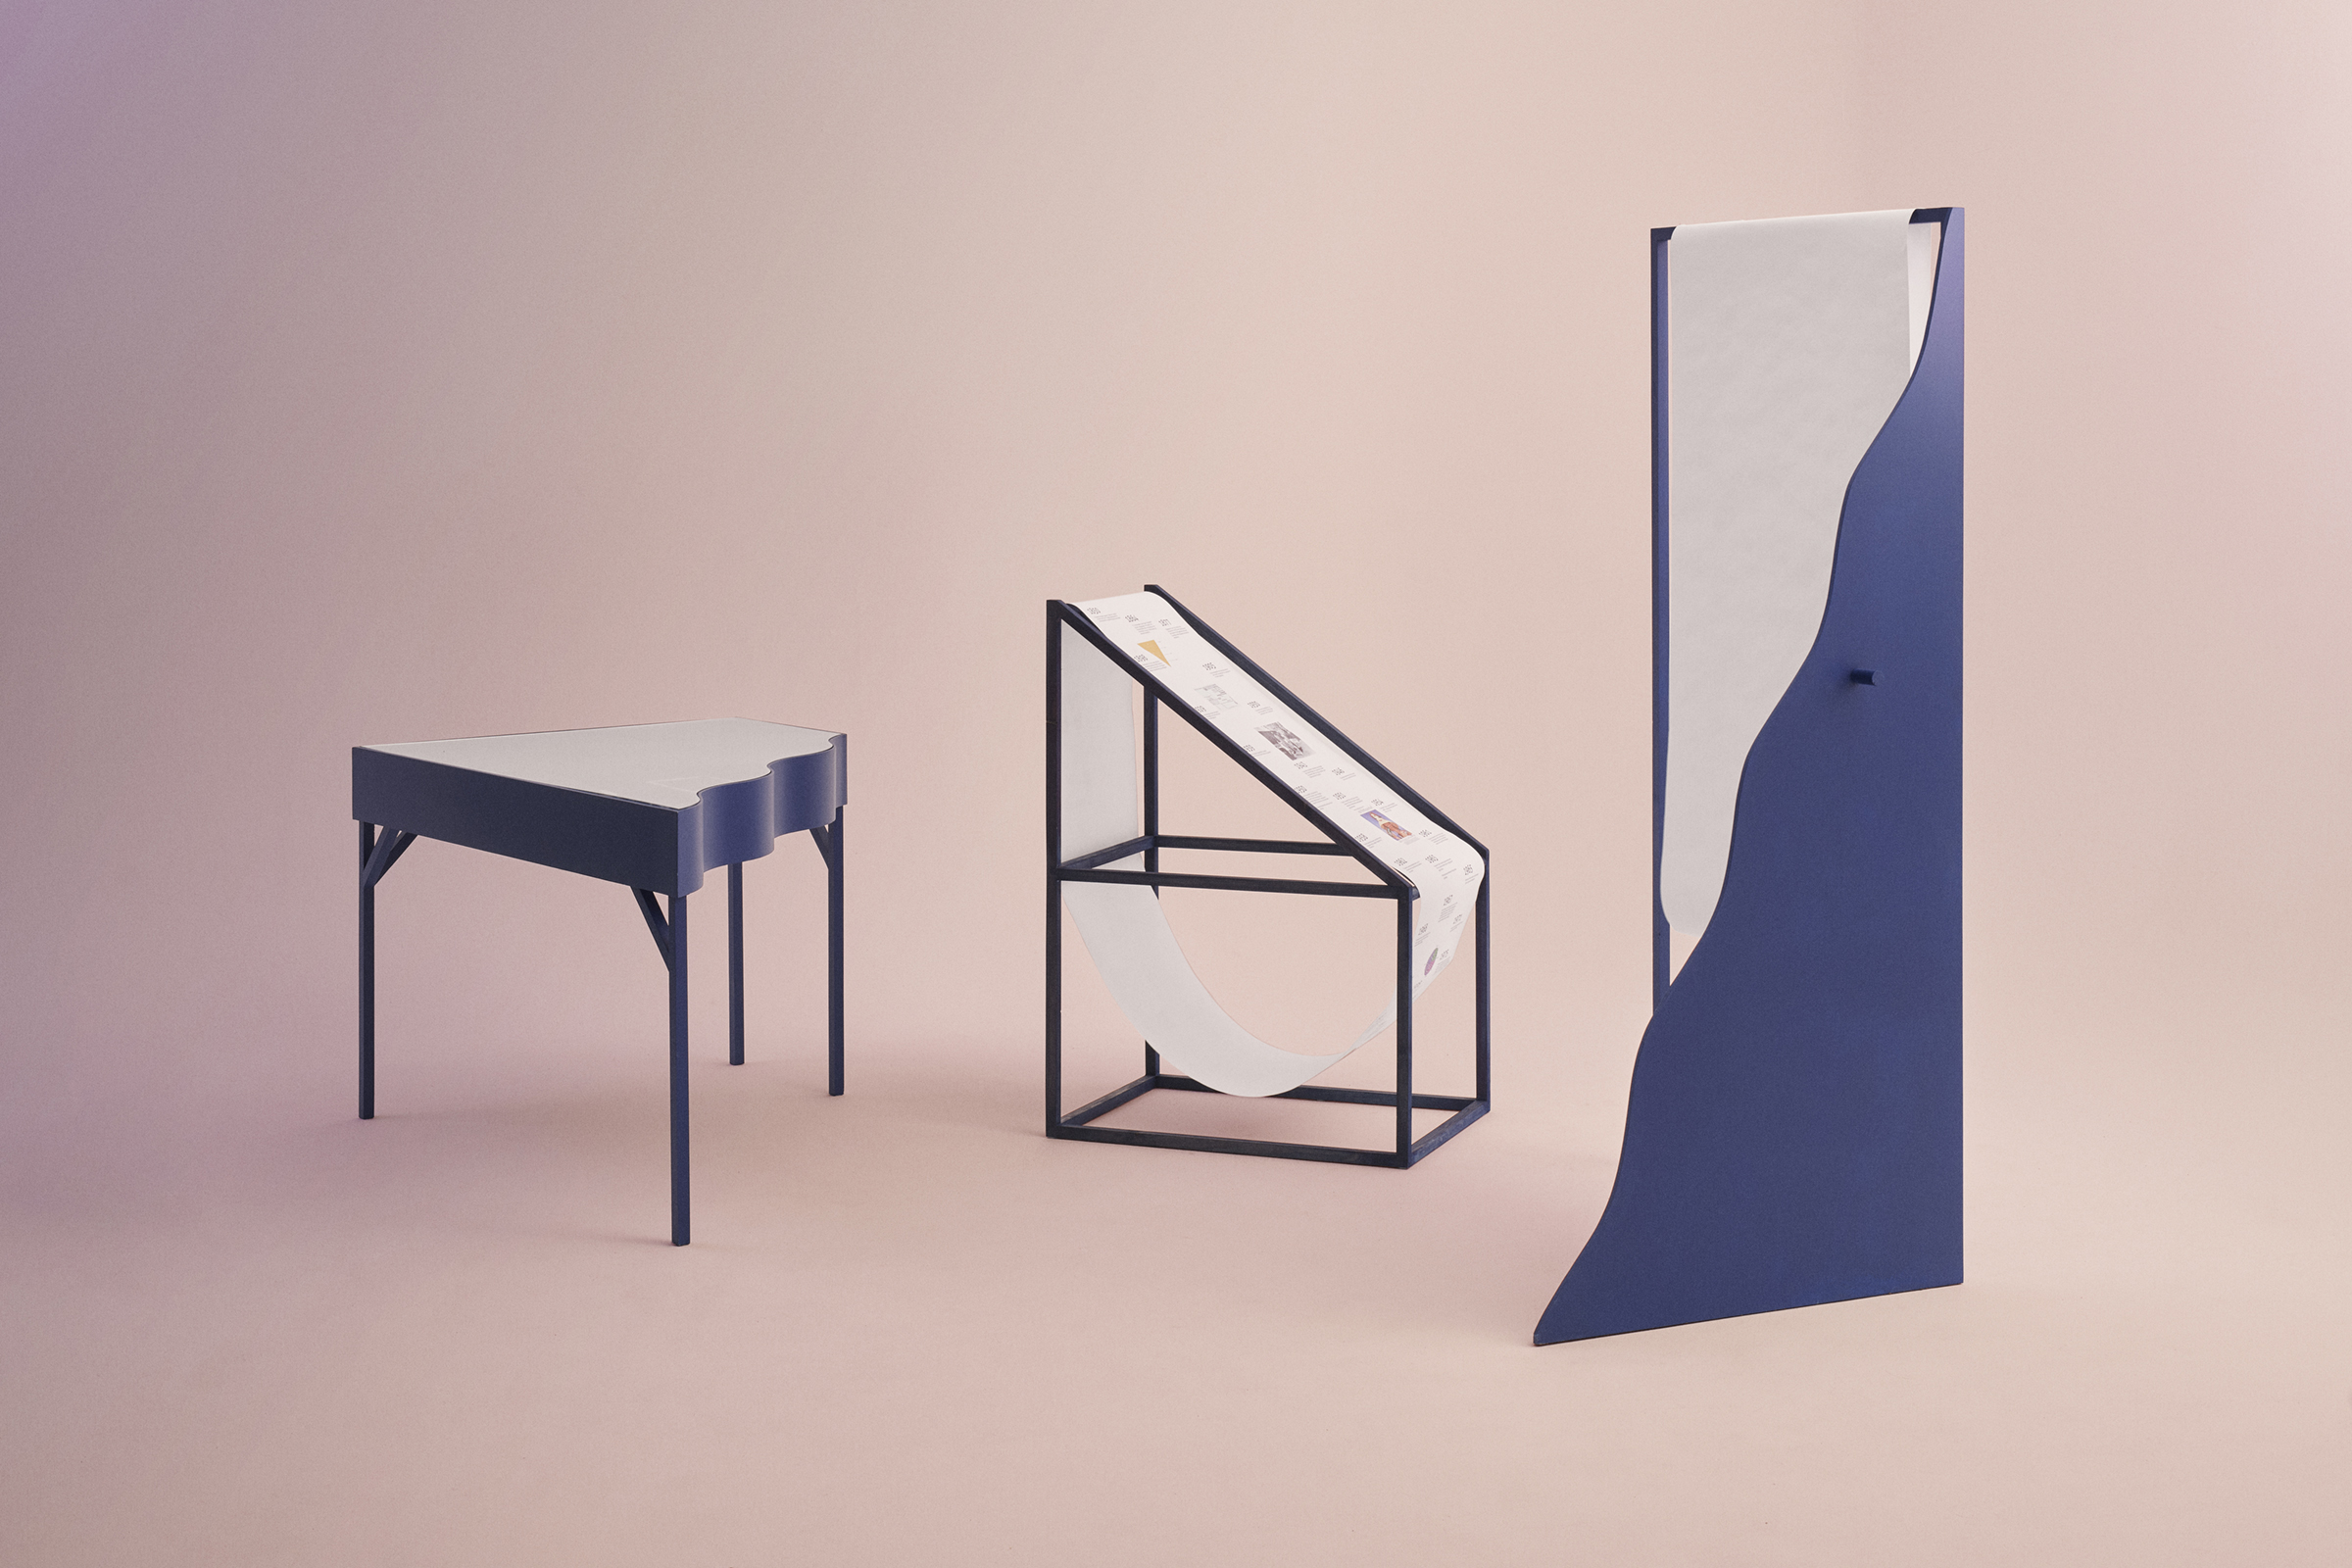 Design displays for the Danish Museum of Post and Telecommunications, by Hvass Hannibal.